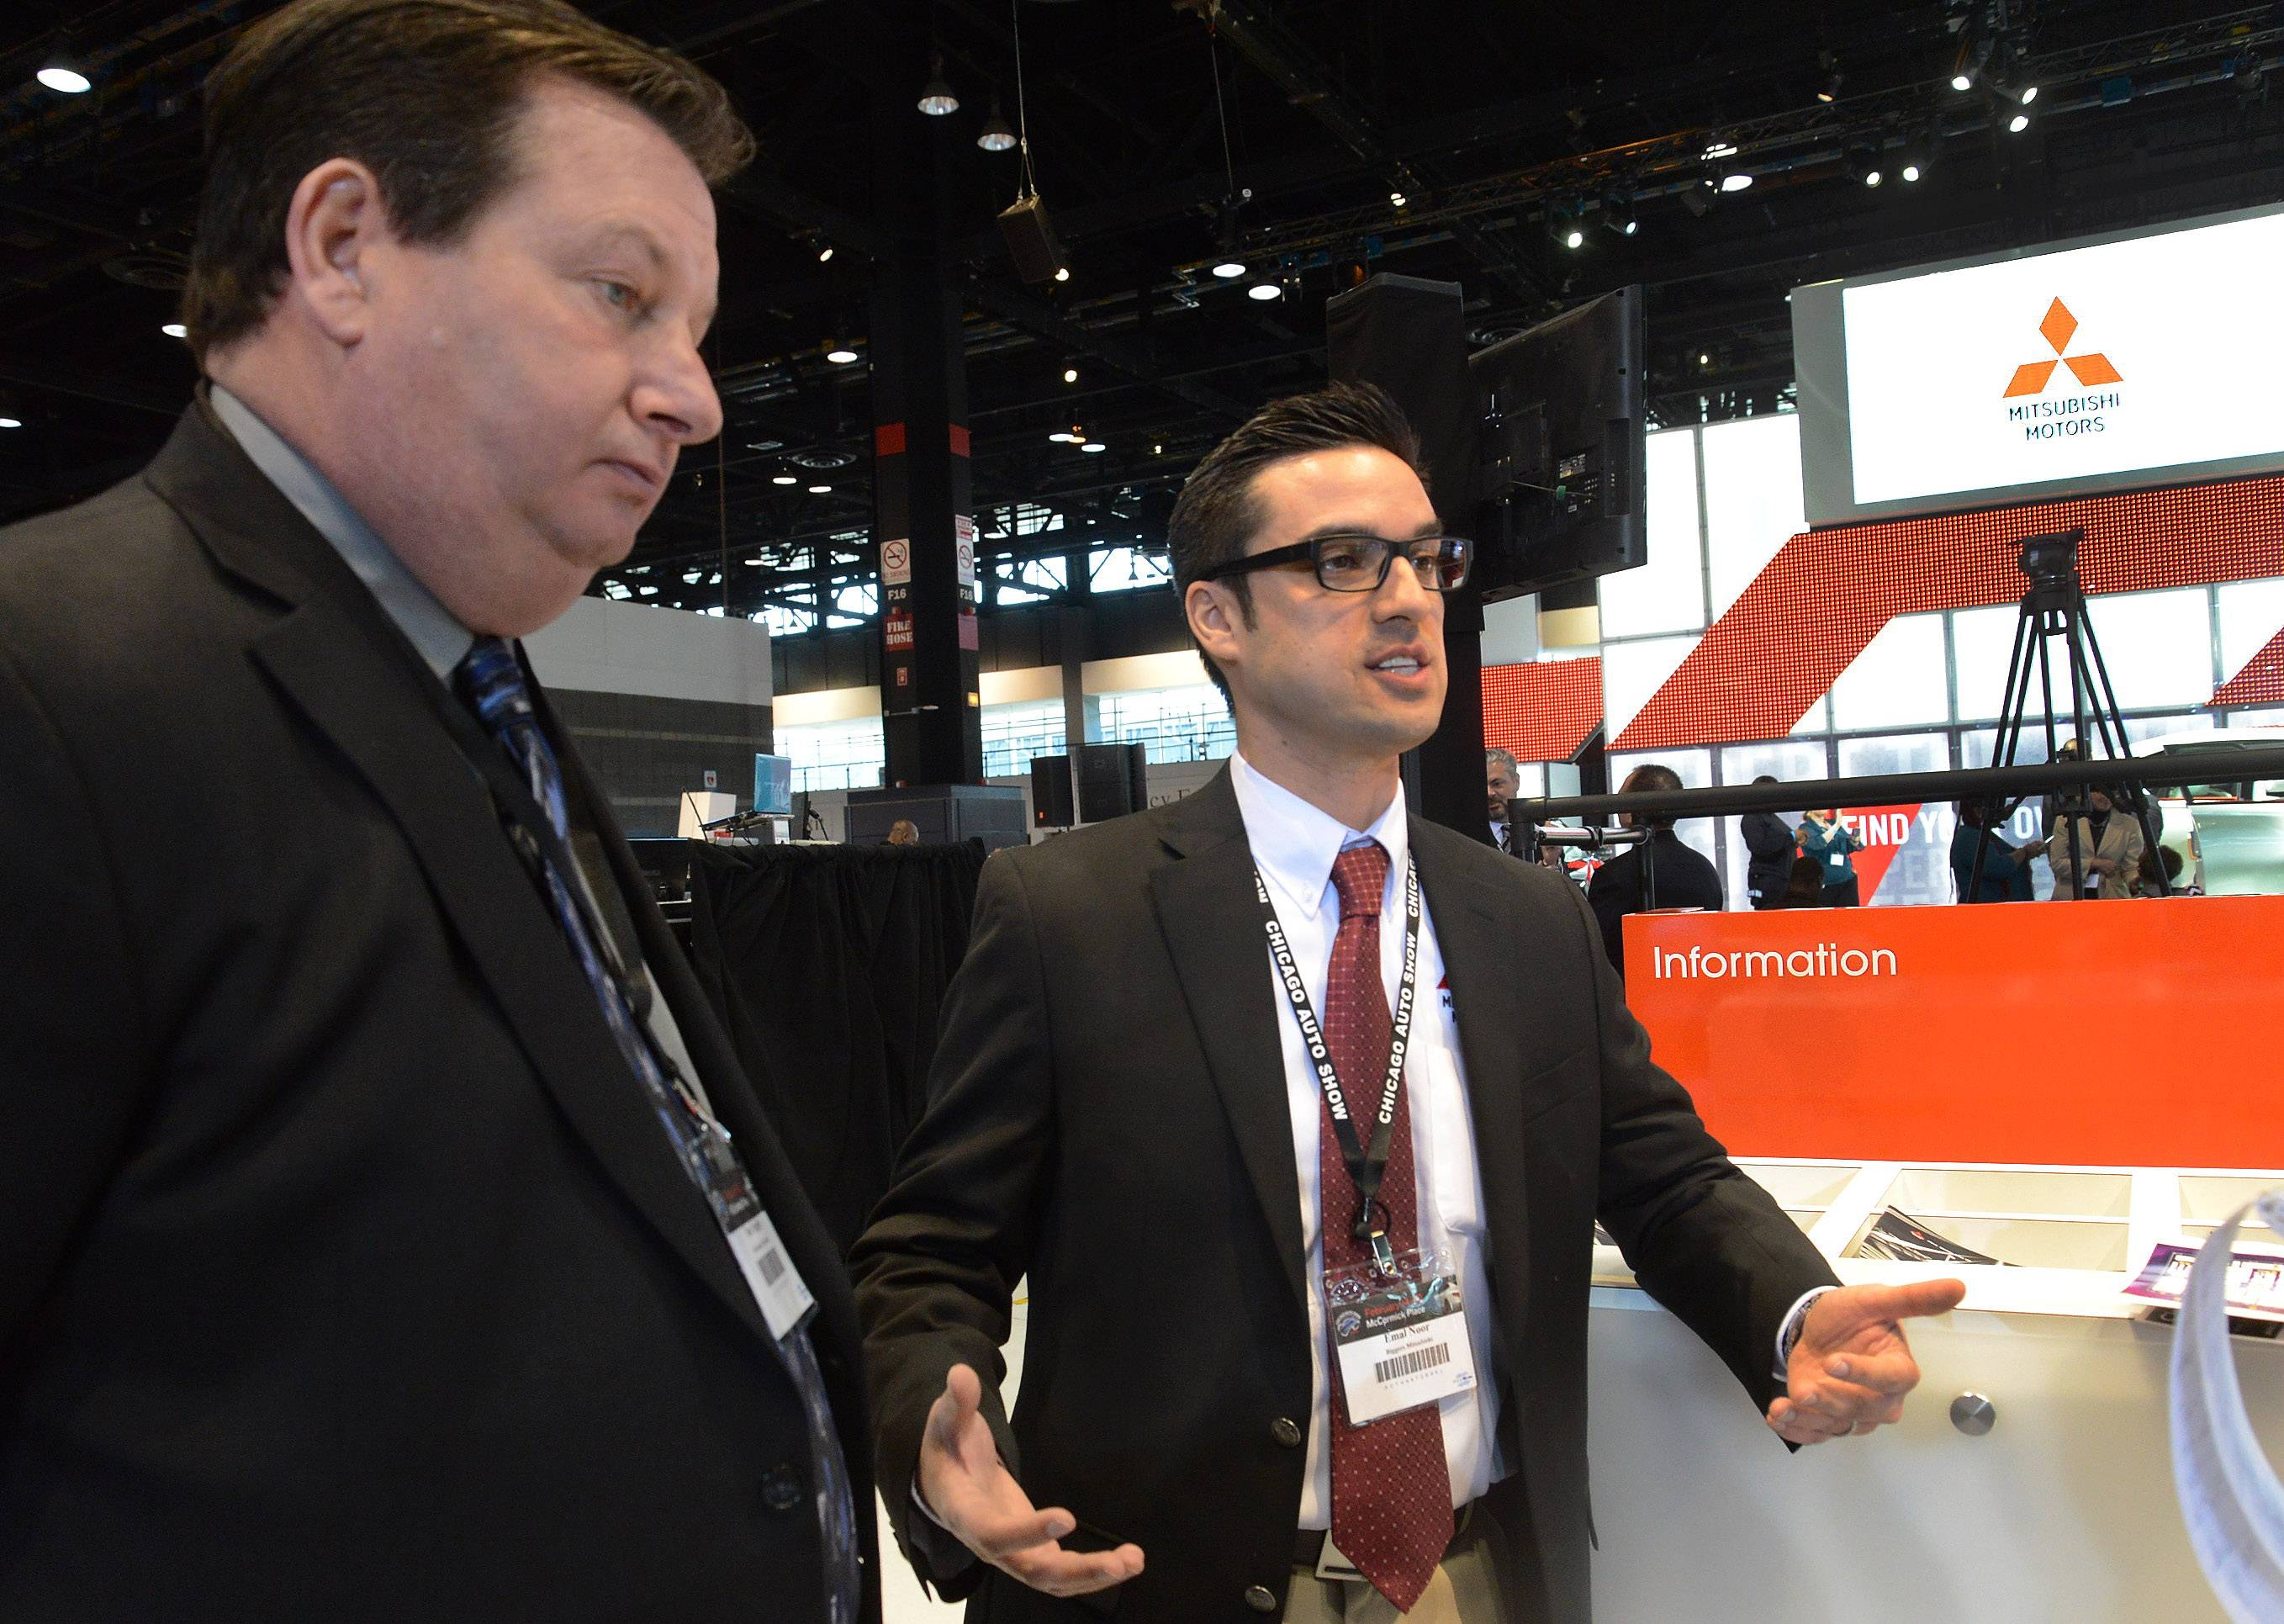 Thomas Hughes of Schaumburg Mitsubishi, left, and Emal Noor of Biggers Mitsubishi in Elgin talk about the new Mitsubishi offerings at the 2015 Chicago Auto Show.